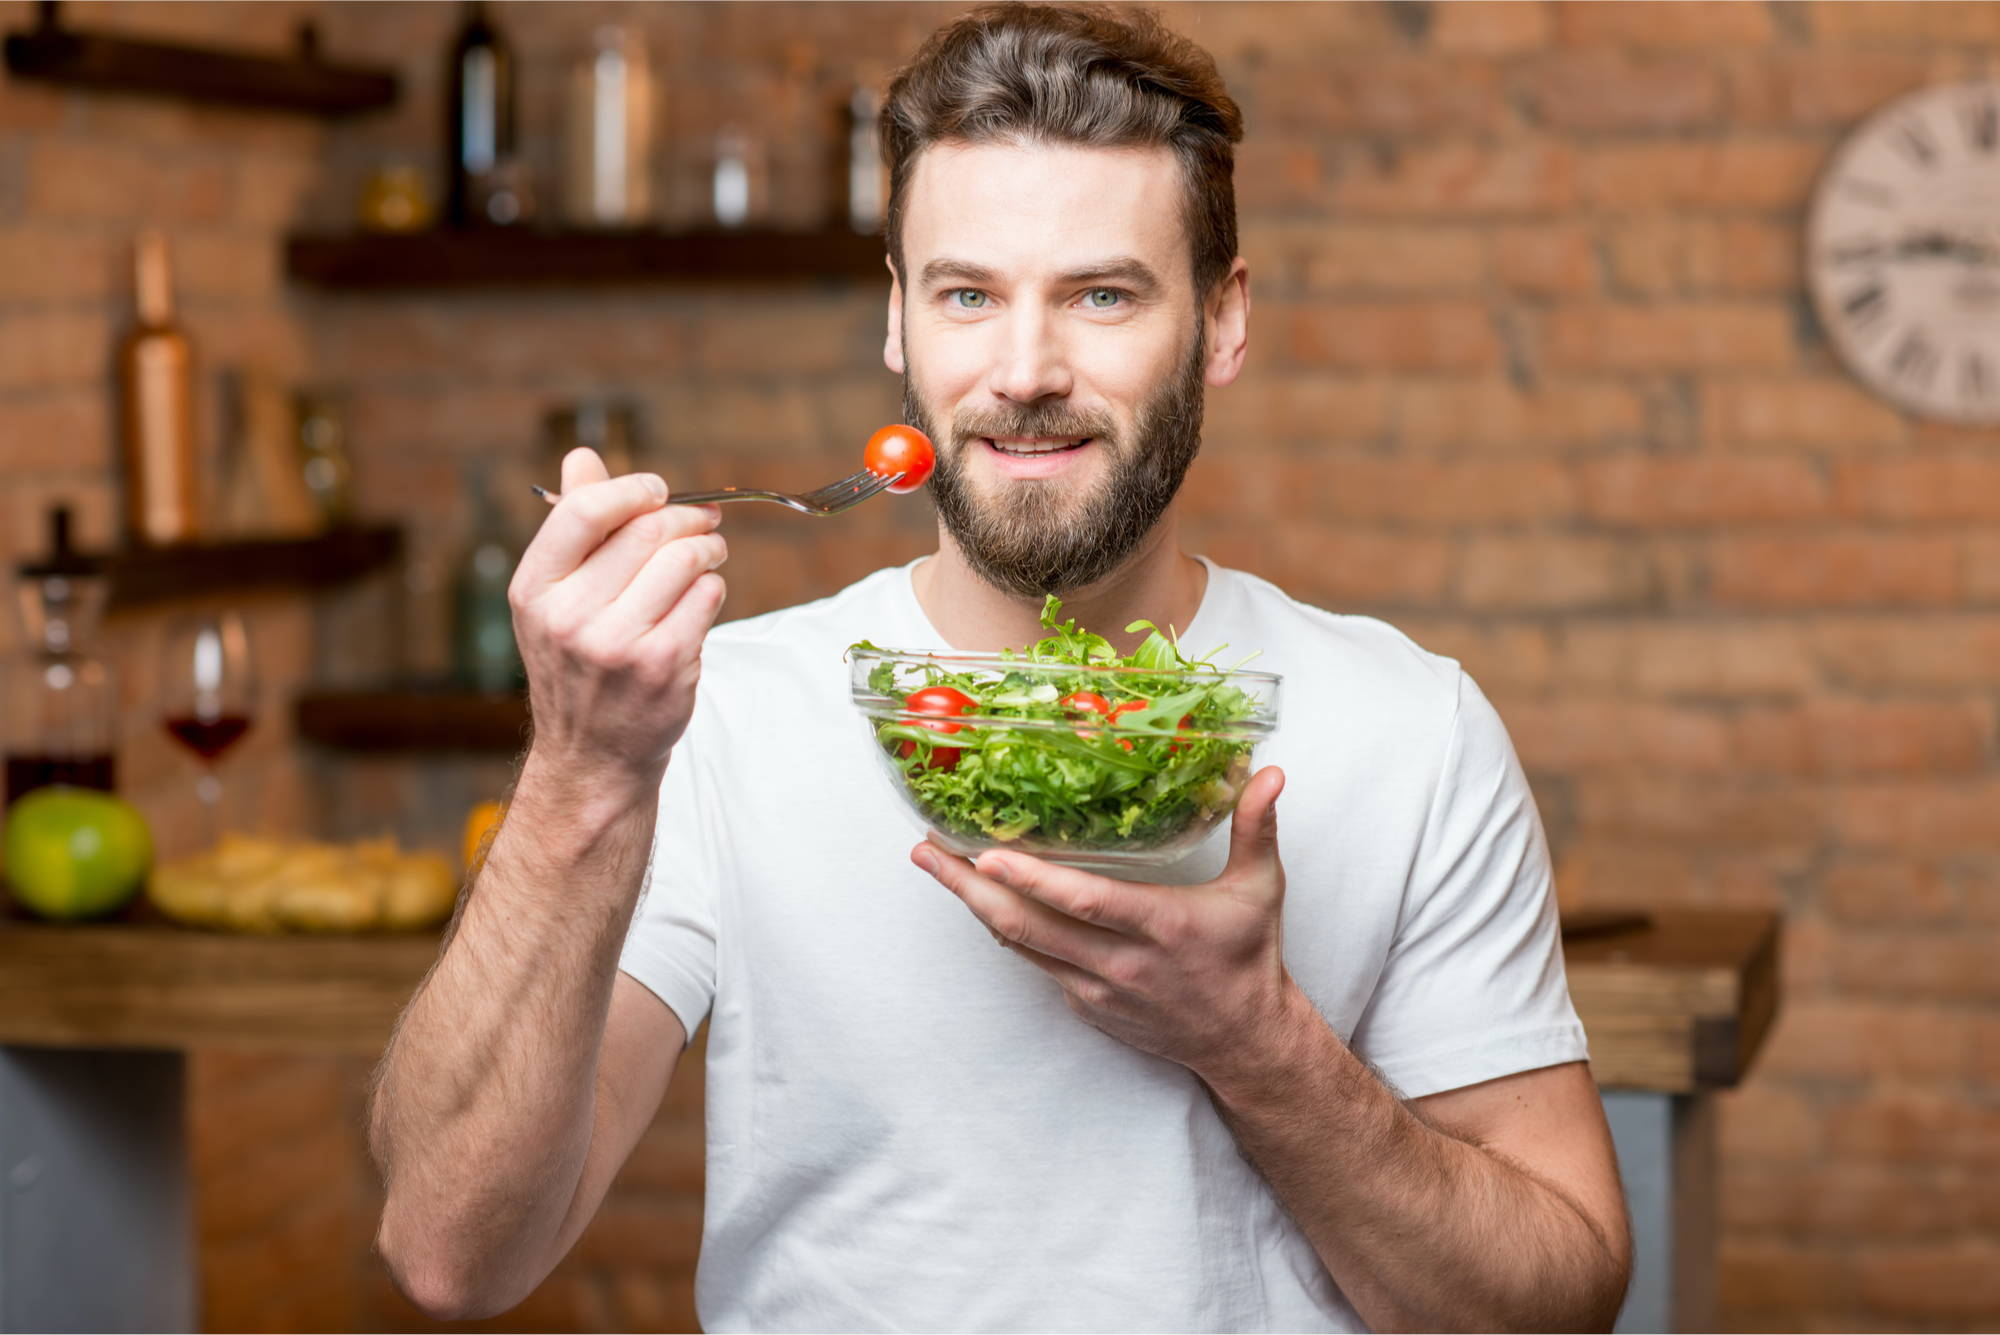 Plant-based diets are good for your health